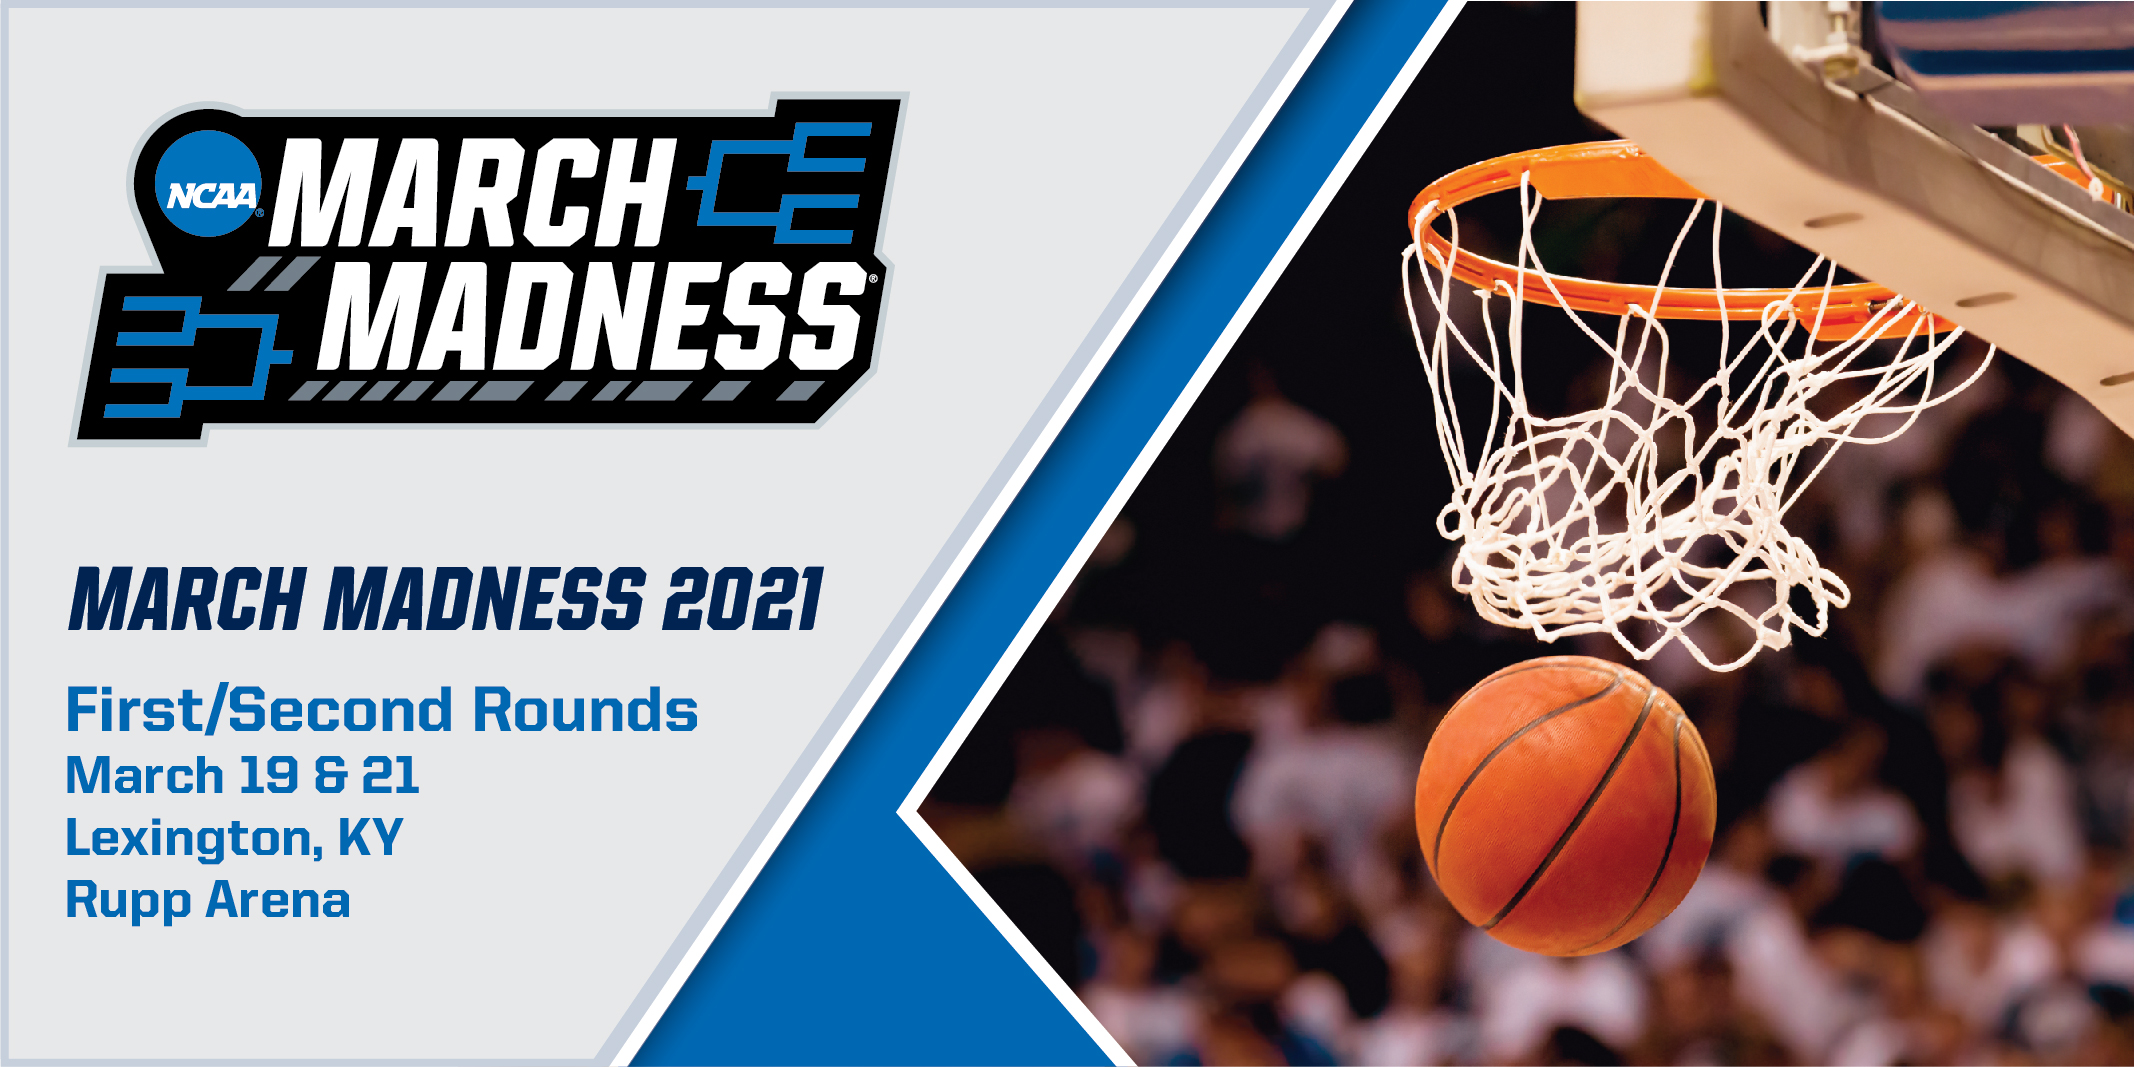 2021 NCAA® March Madness